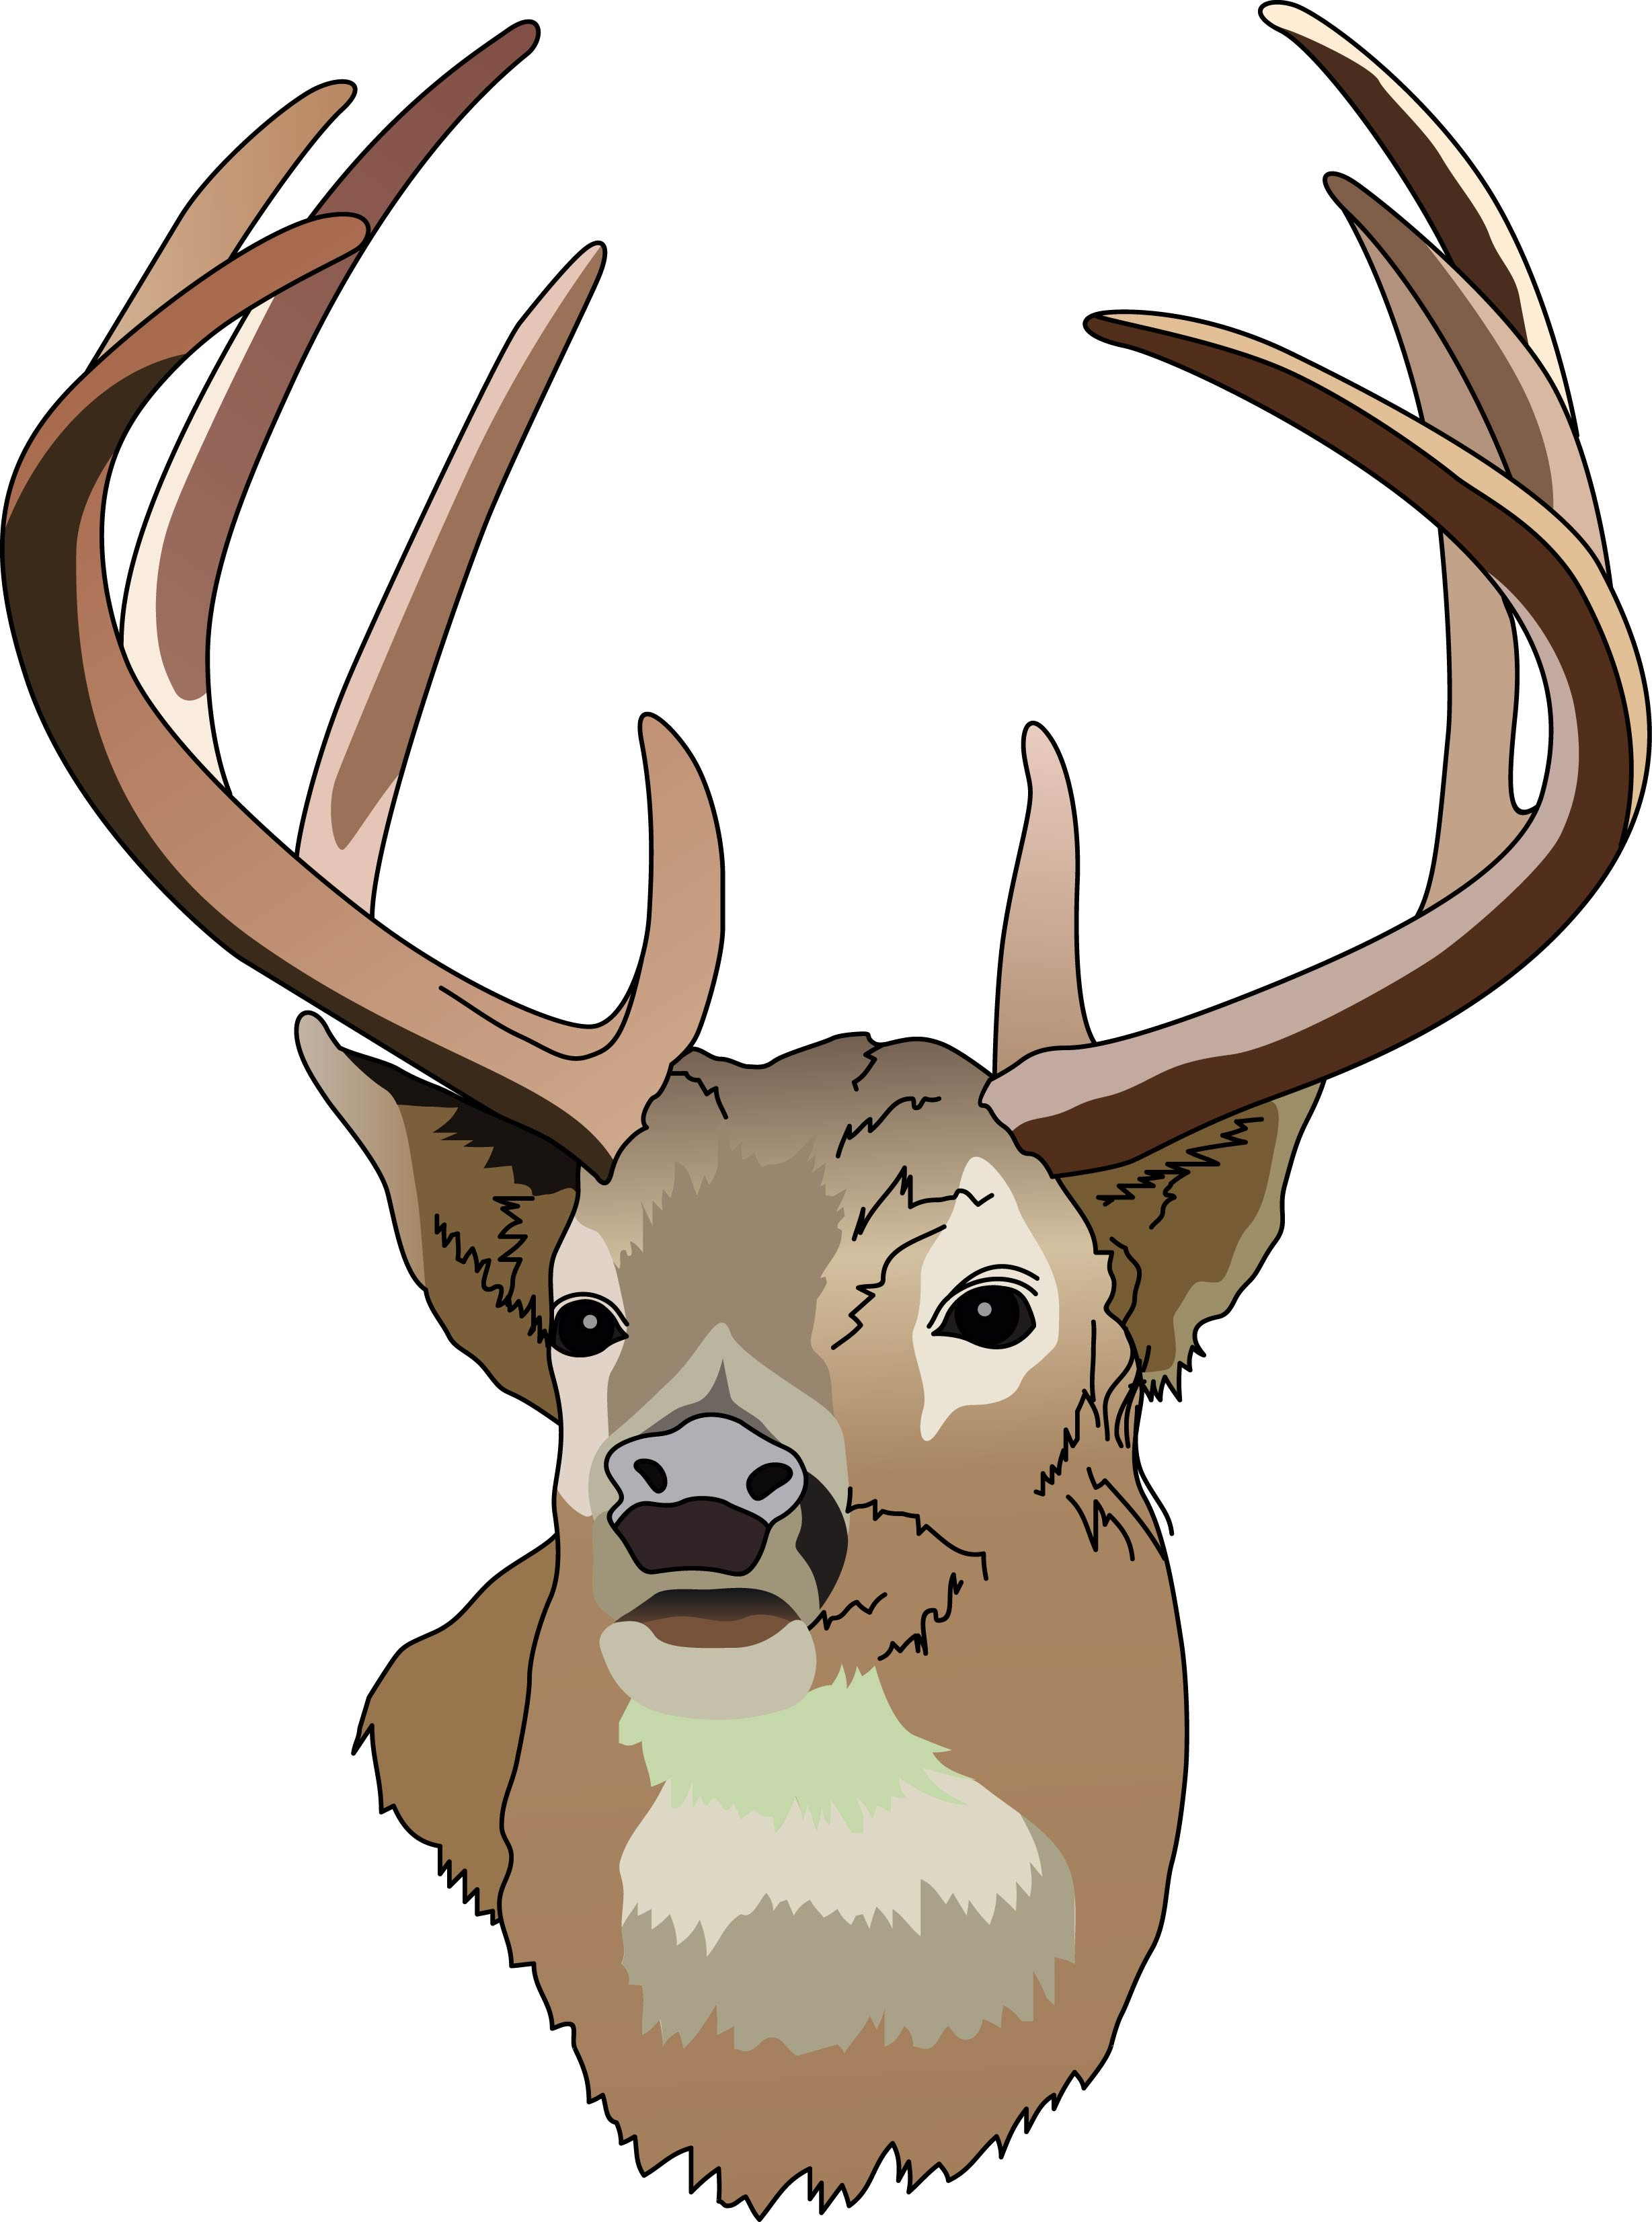 Whitetail deer outline clipart picture free stock Whitetail Deer Head Clip Art free image picture free stock